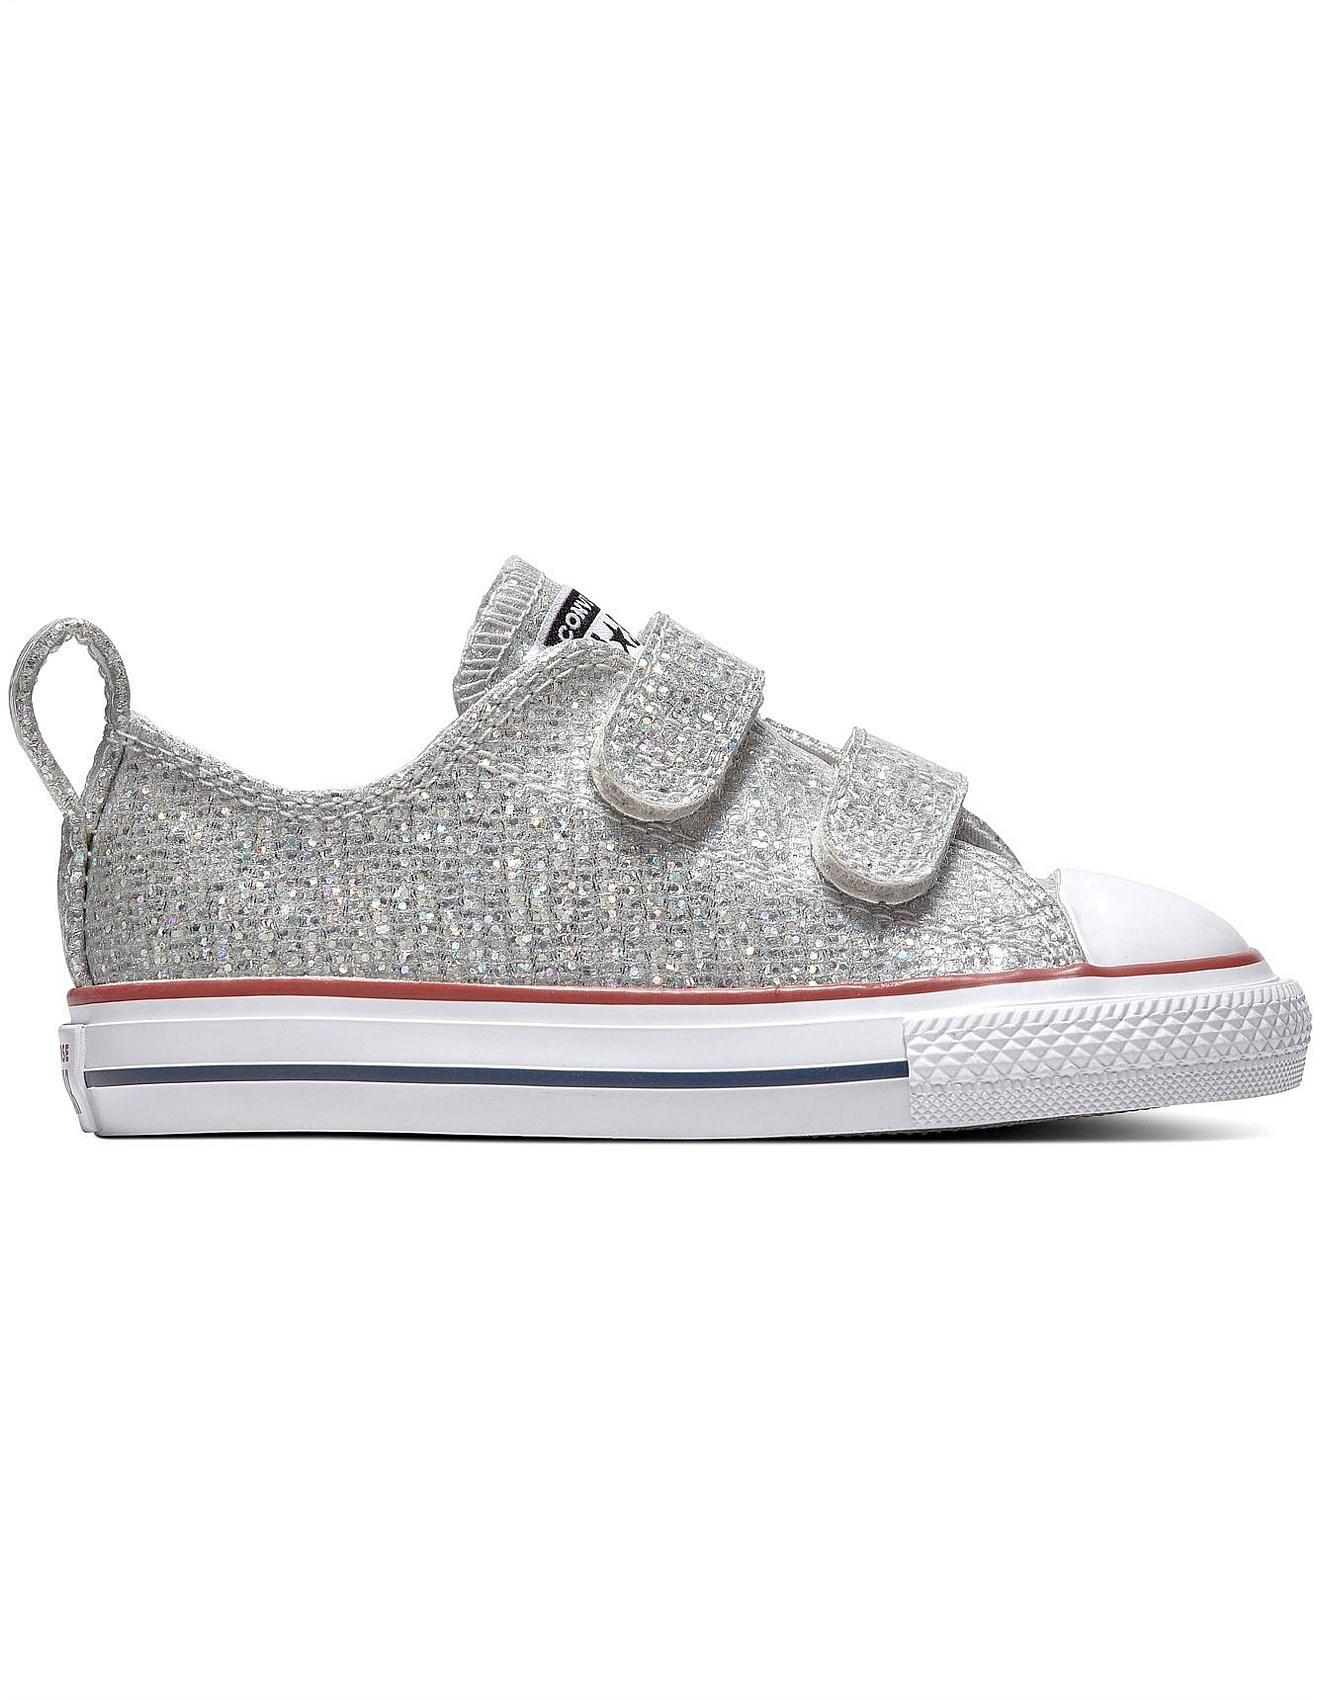 CHUCK TAYLOR ALL STAR 2V SPARKLE OX